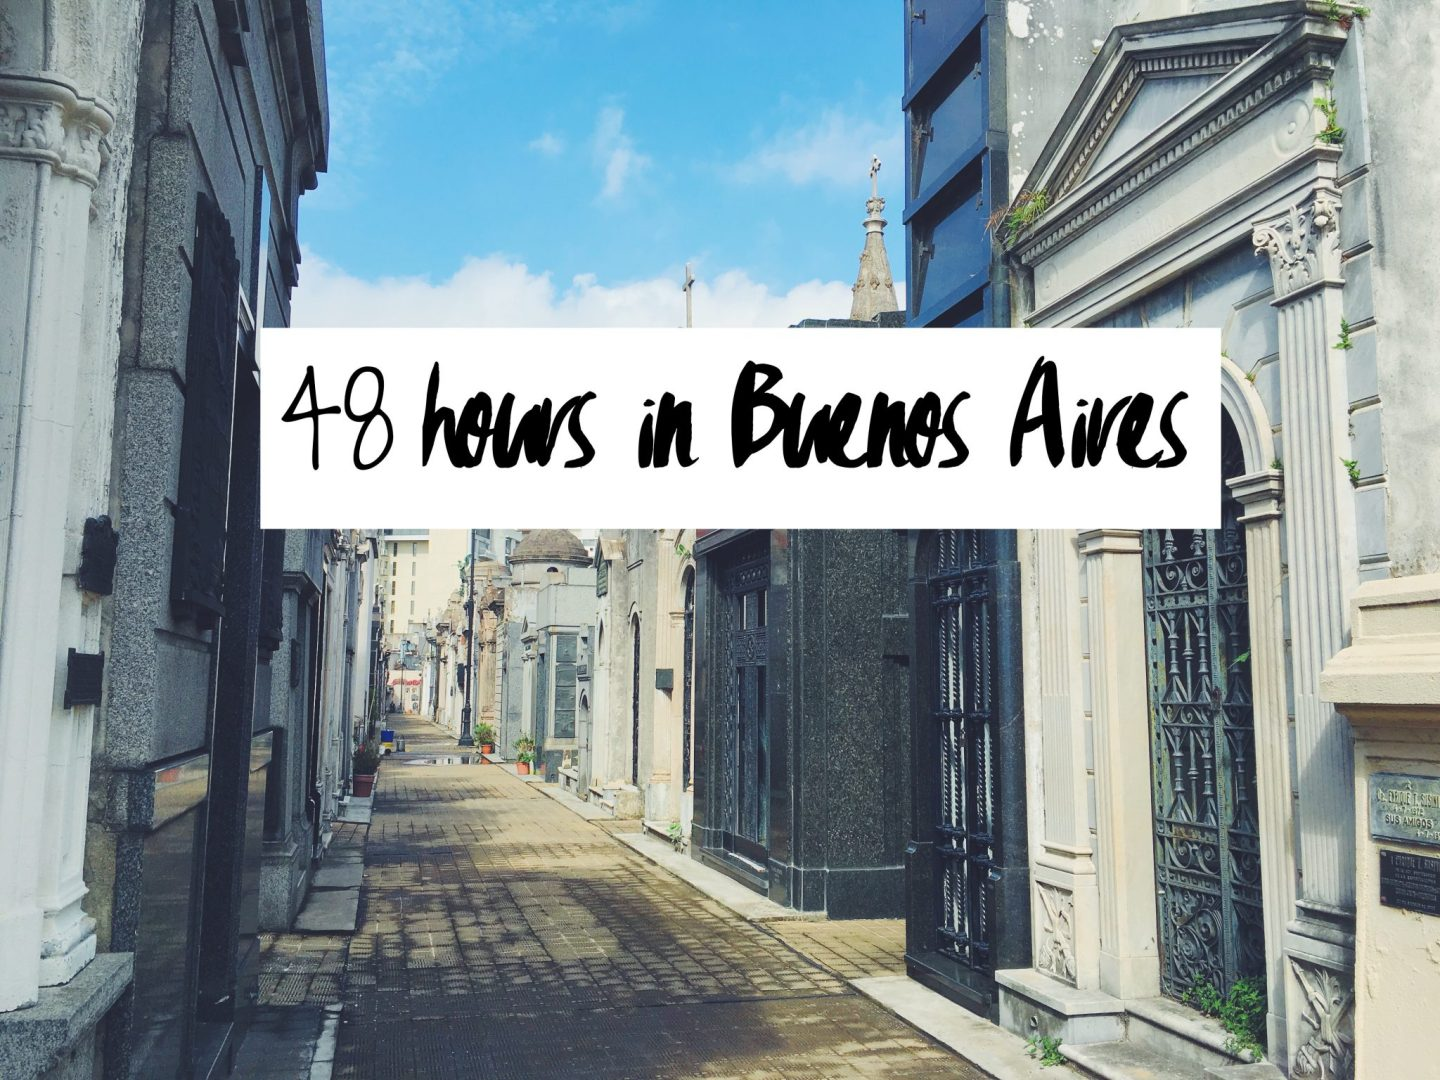 48 hours in Buenos Aires